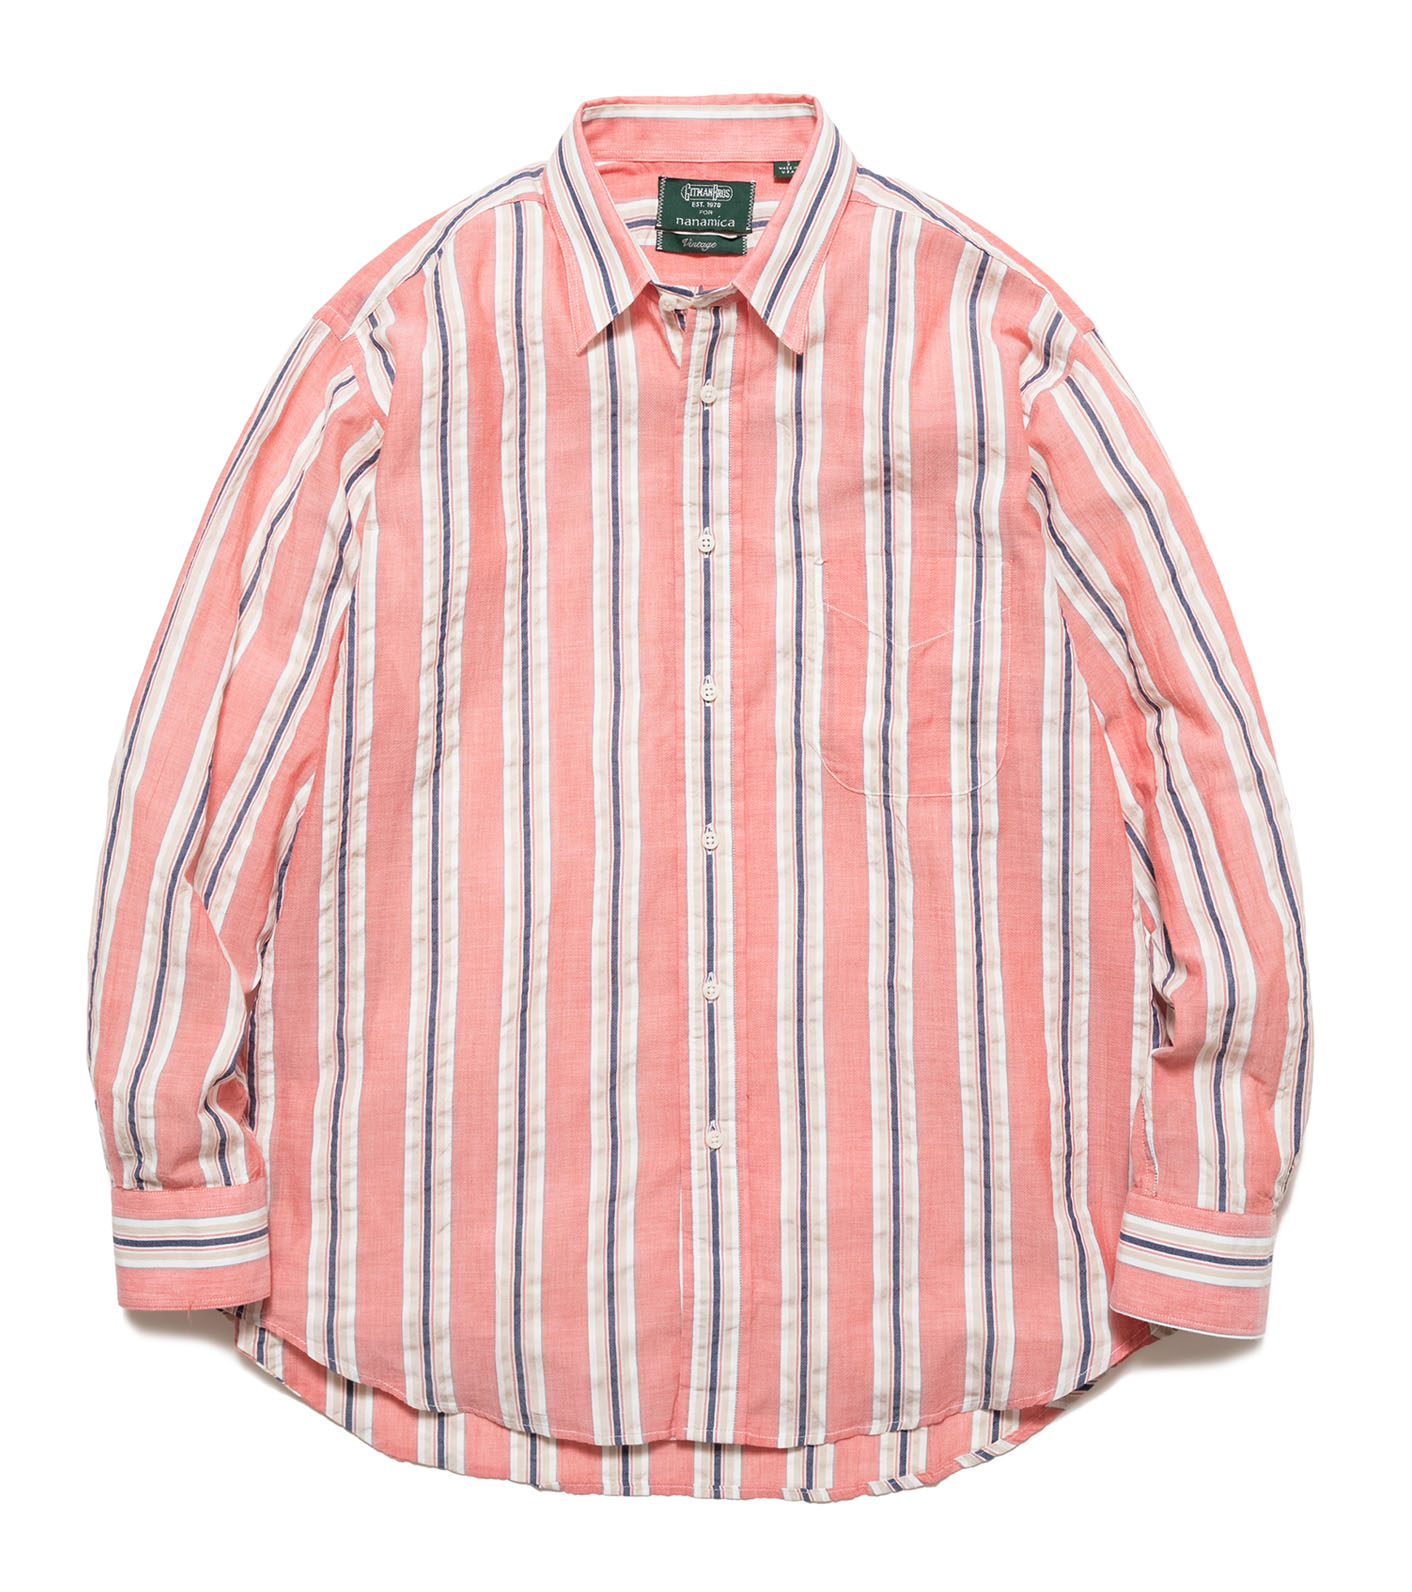 L/S Shirt Cotton Awning Stripe